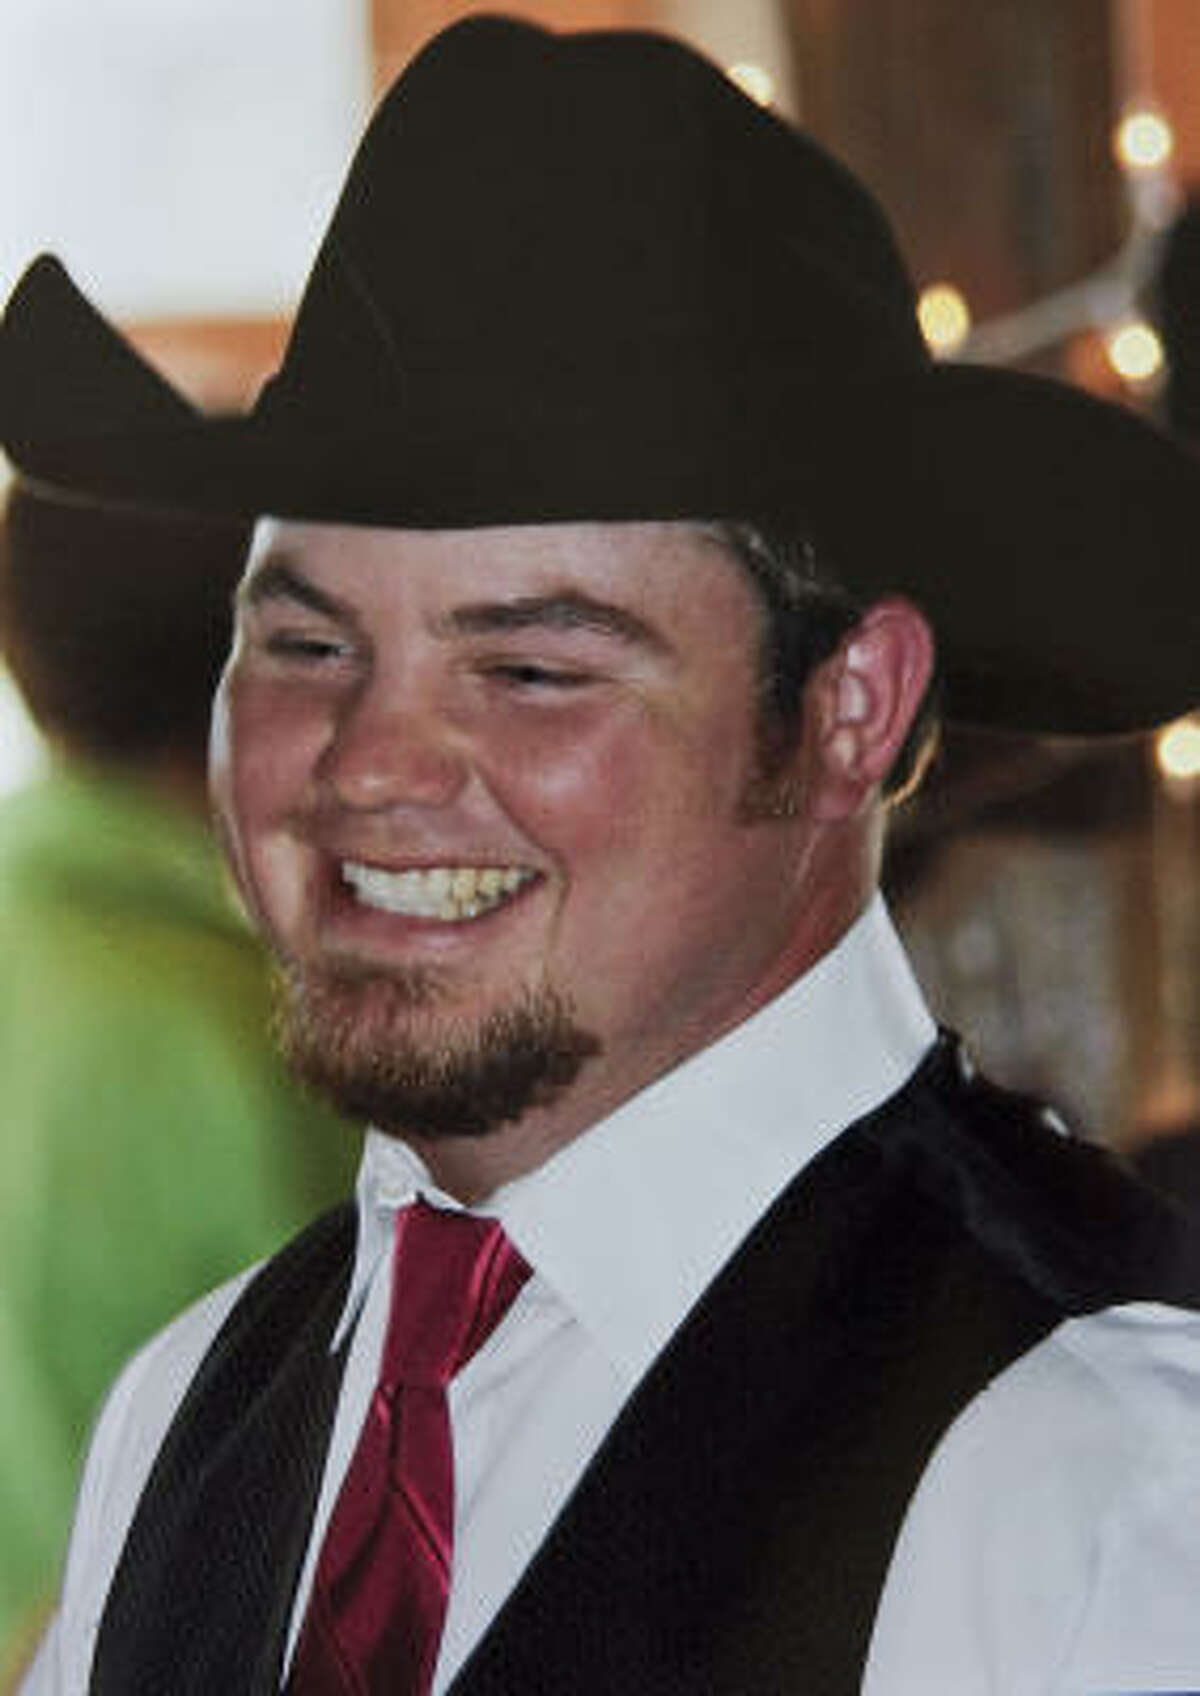 Adam Weise, 24, was a prankster, his mother says.